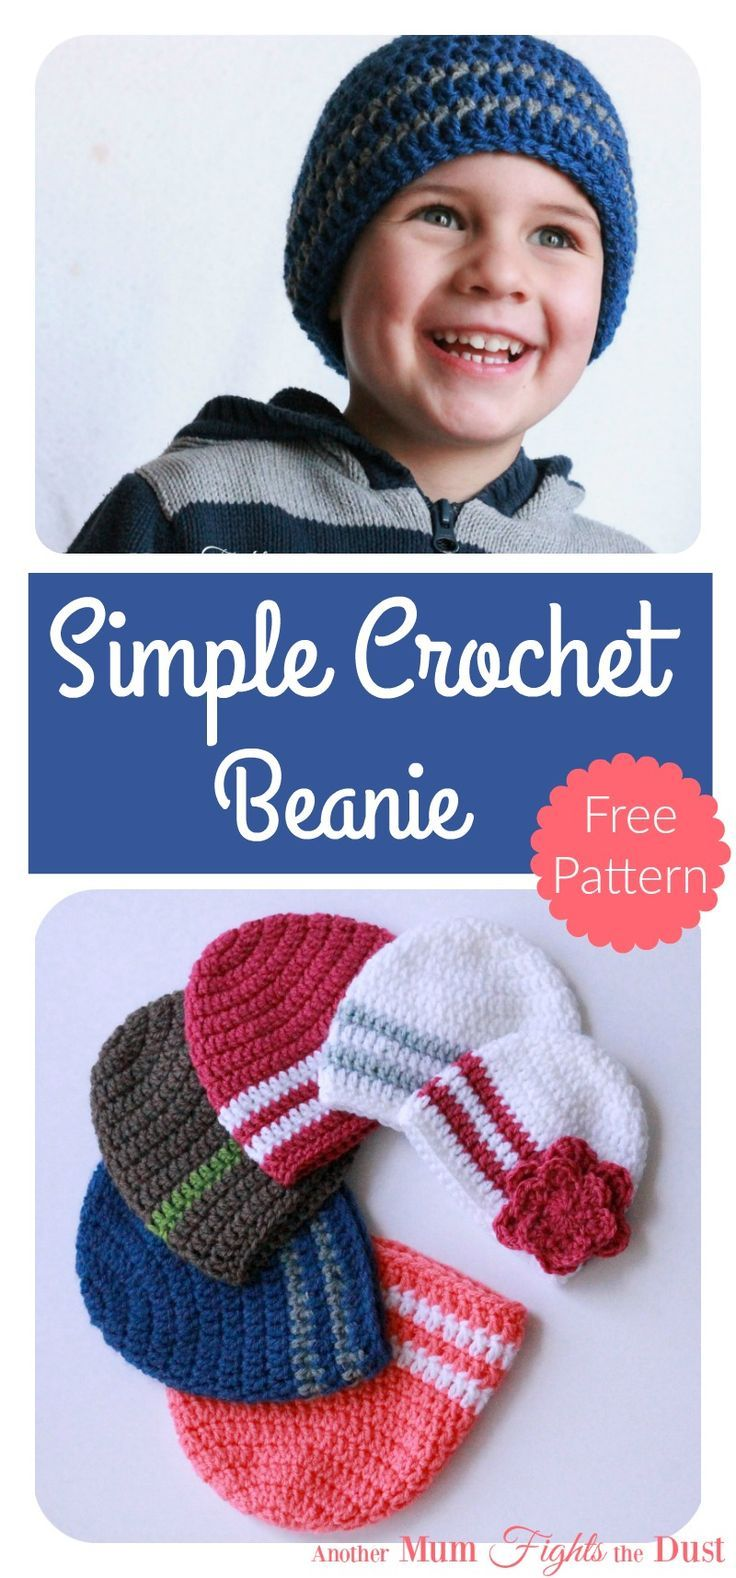 Free Crochet Pattern / Easy Crochet Hat Pattern / Crochet Beanie Pattern